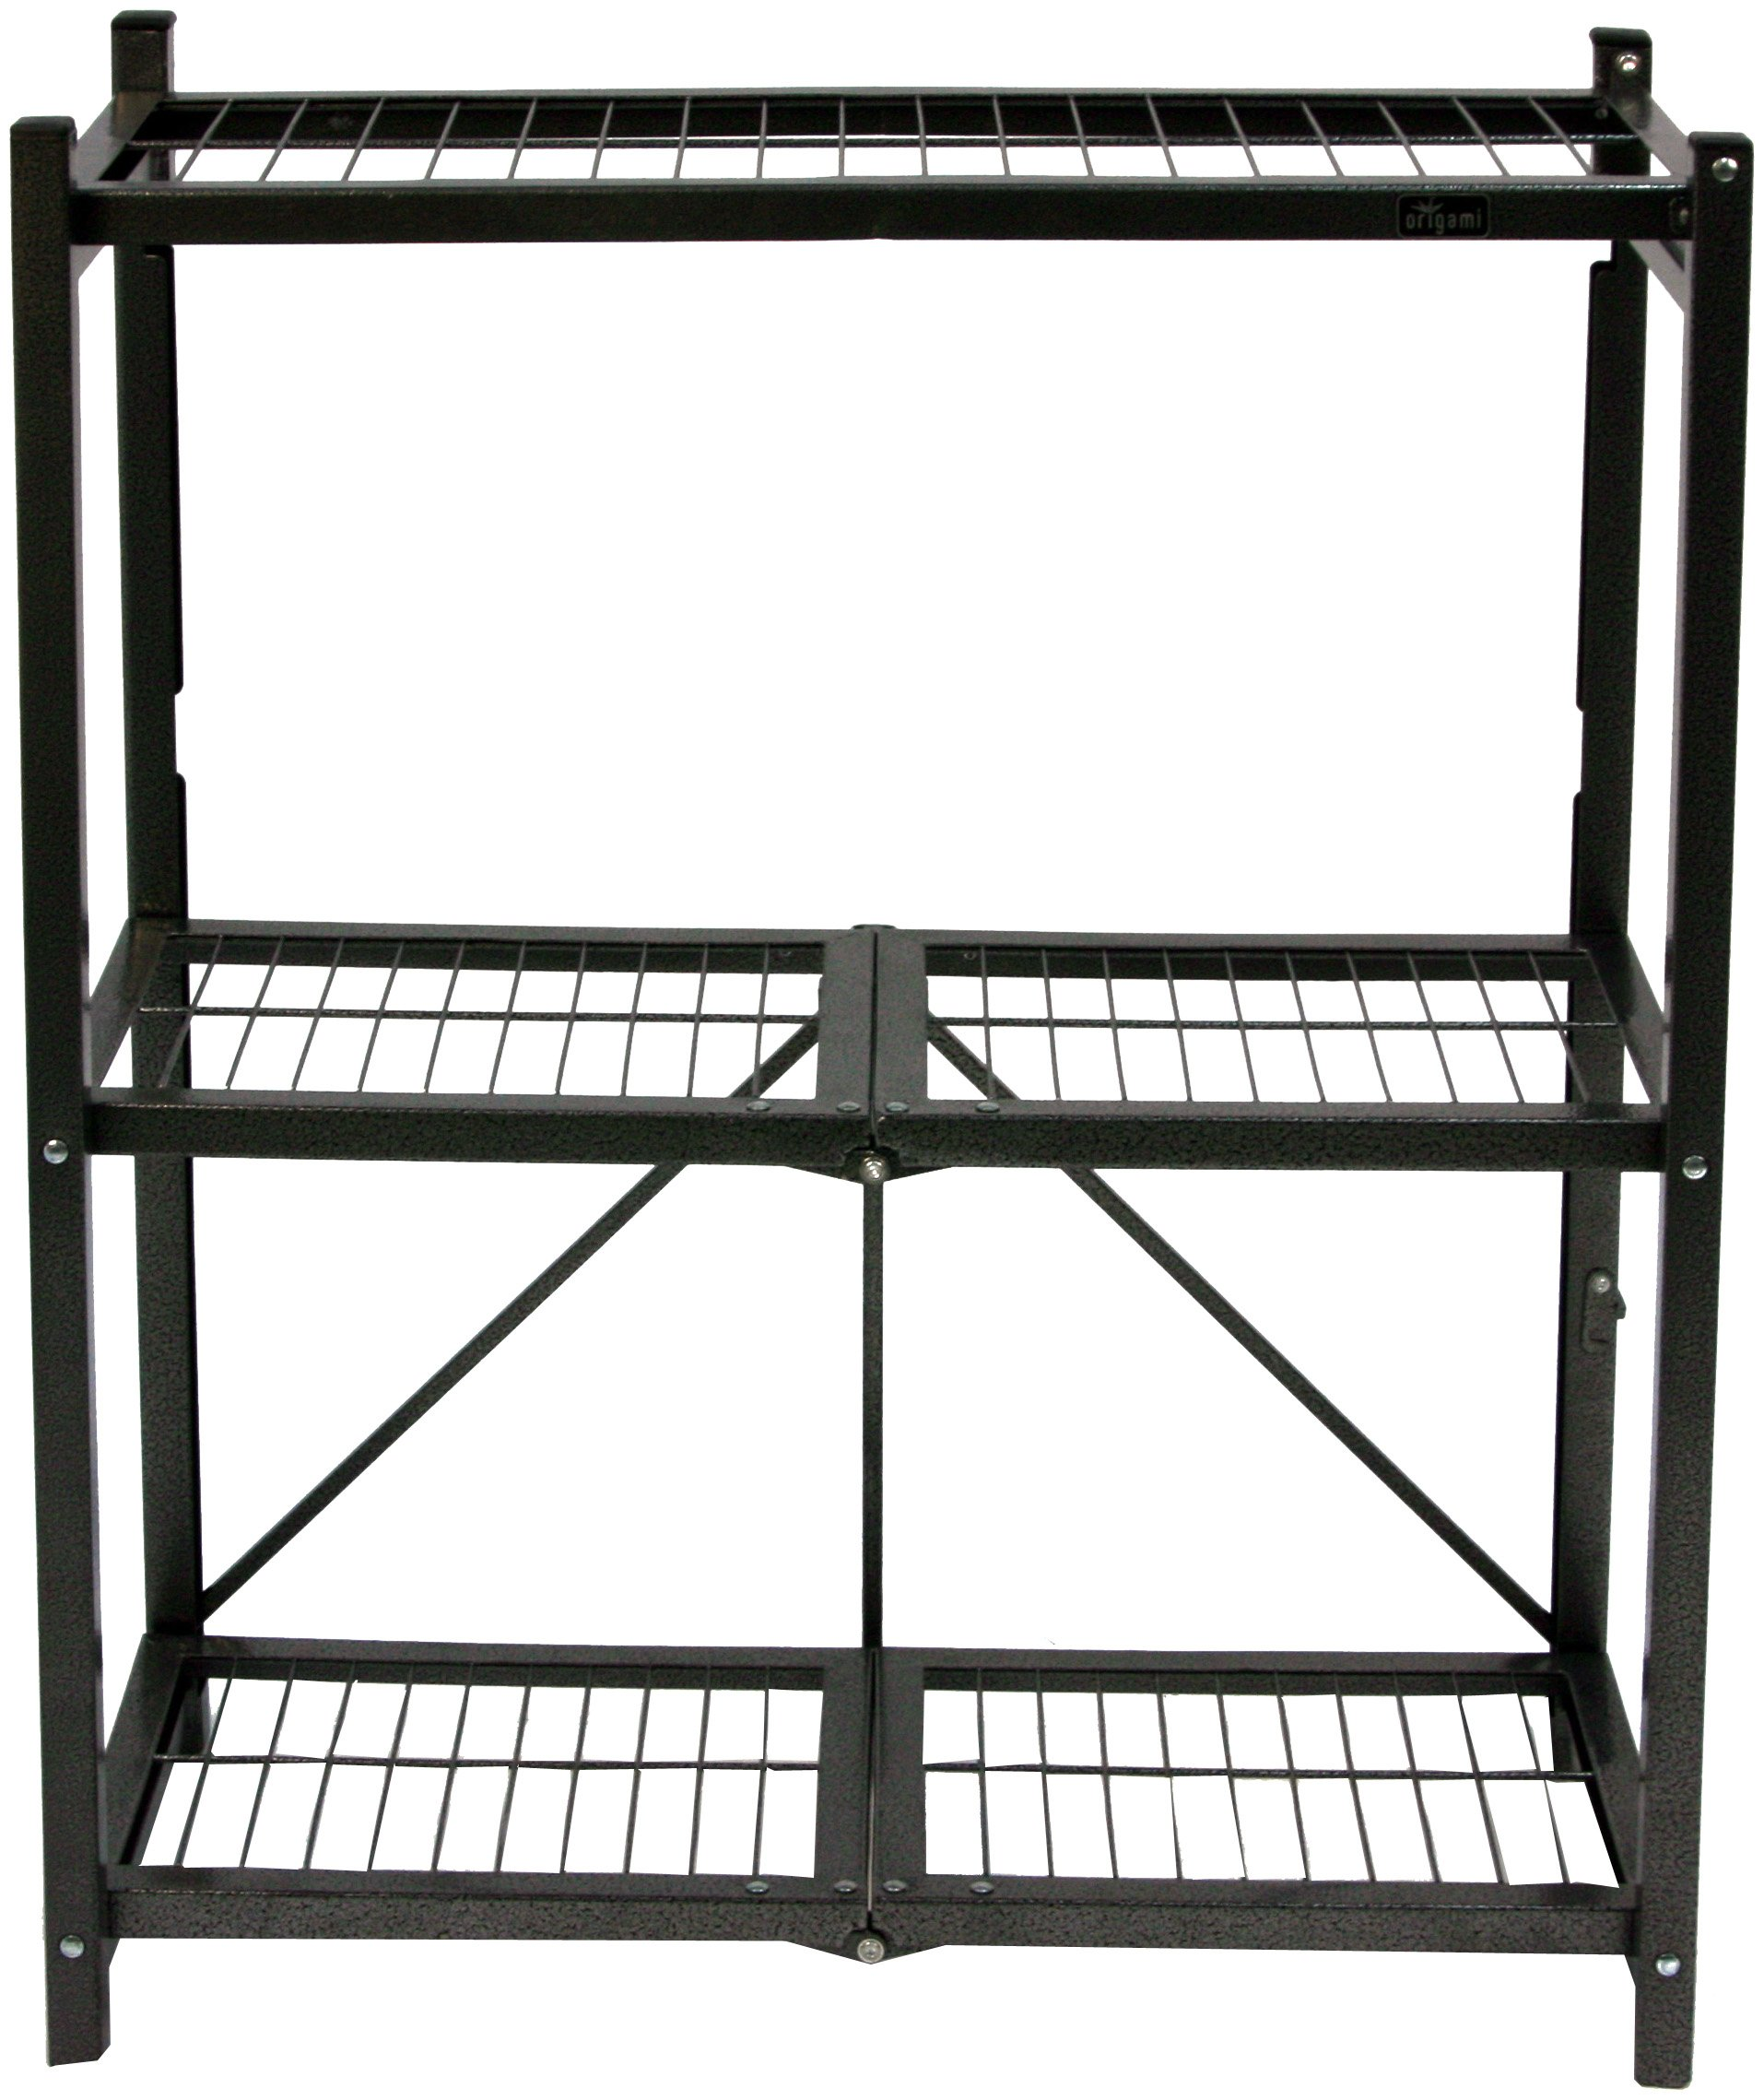 Origami R3-01 General Purpose 3-Shelf Steel Collapsable Storage Rack, Small